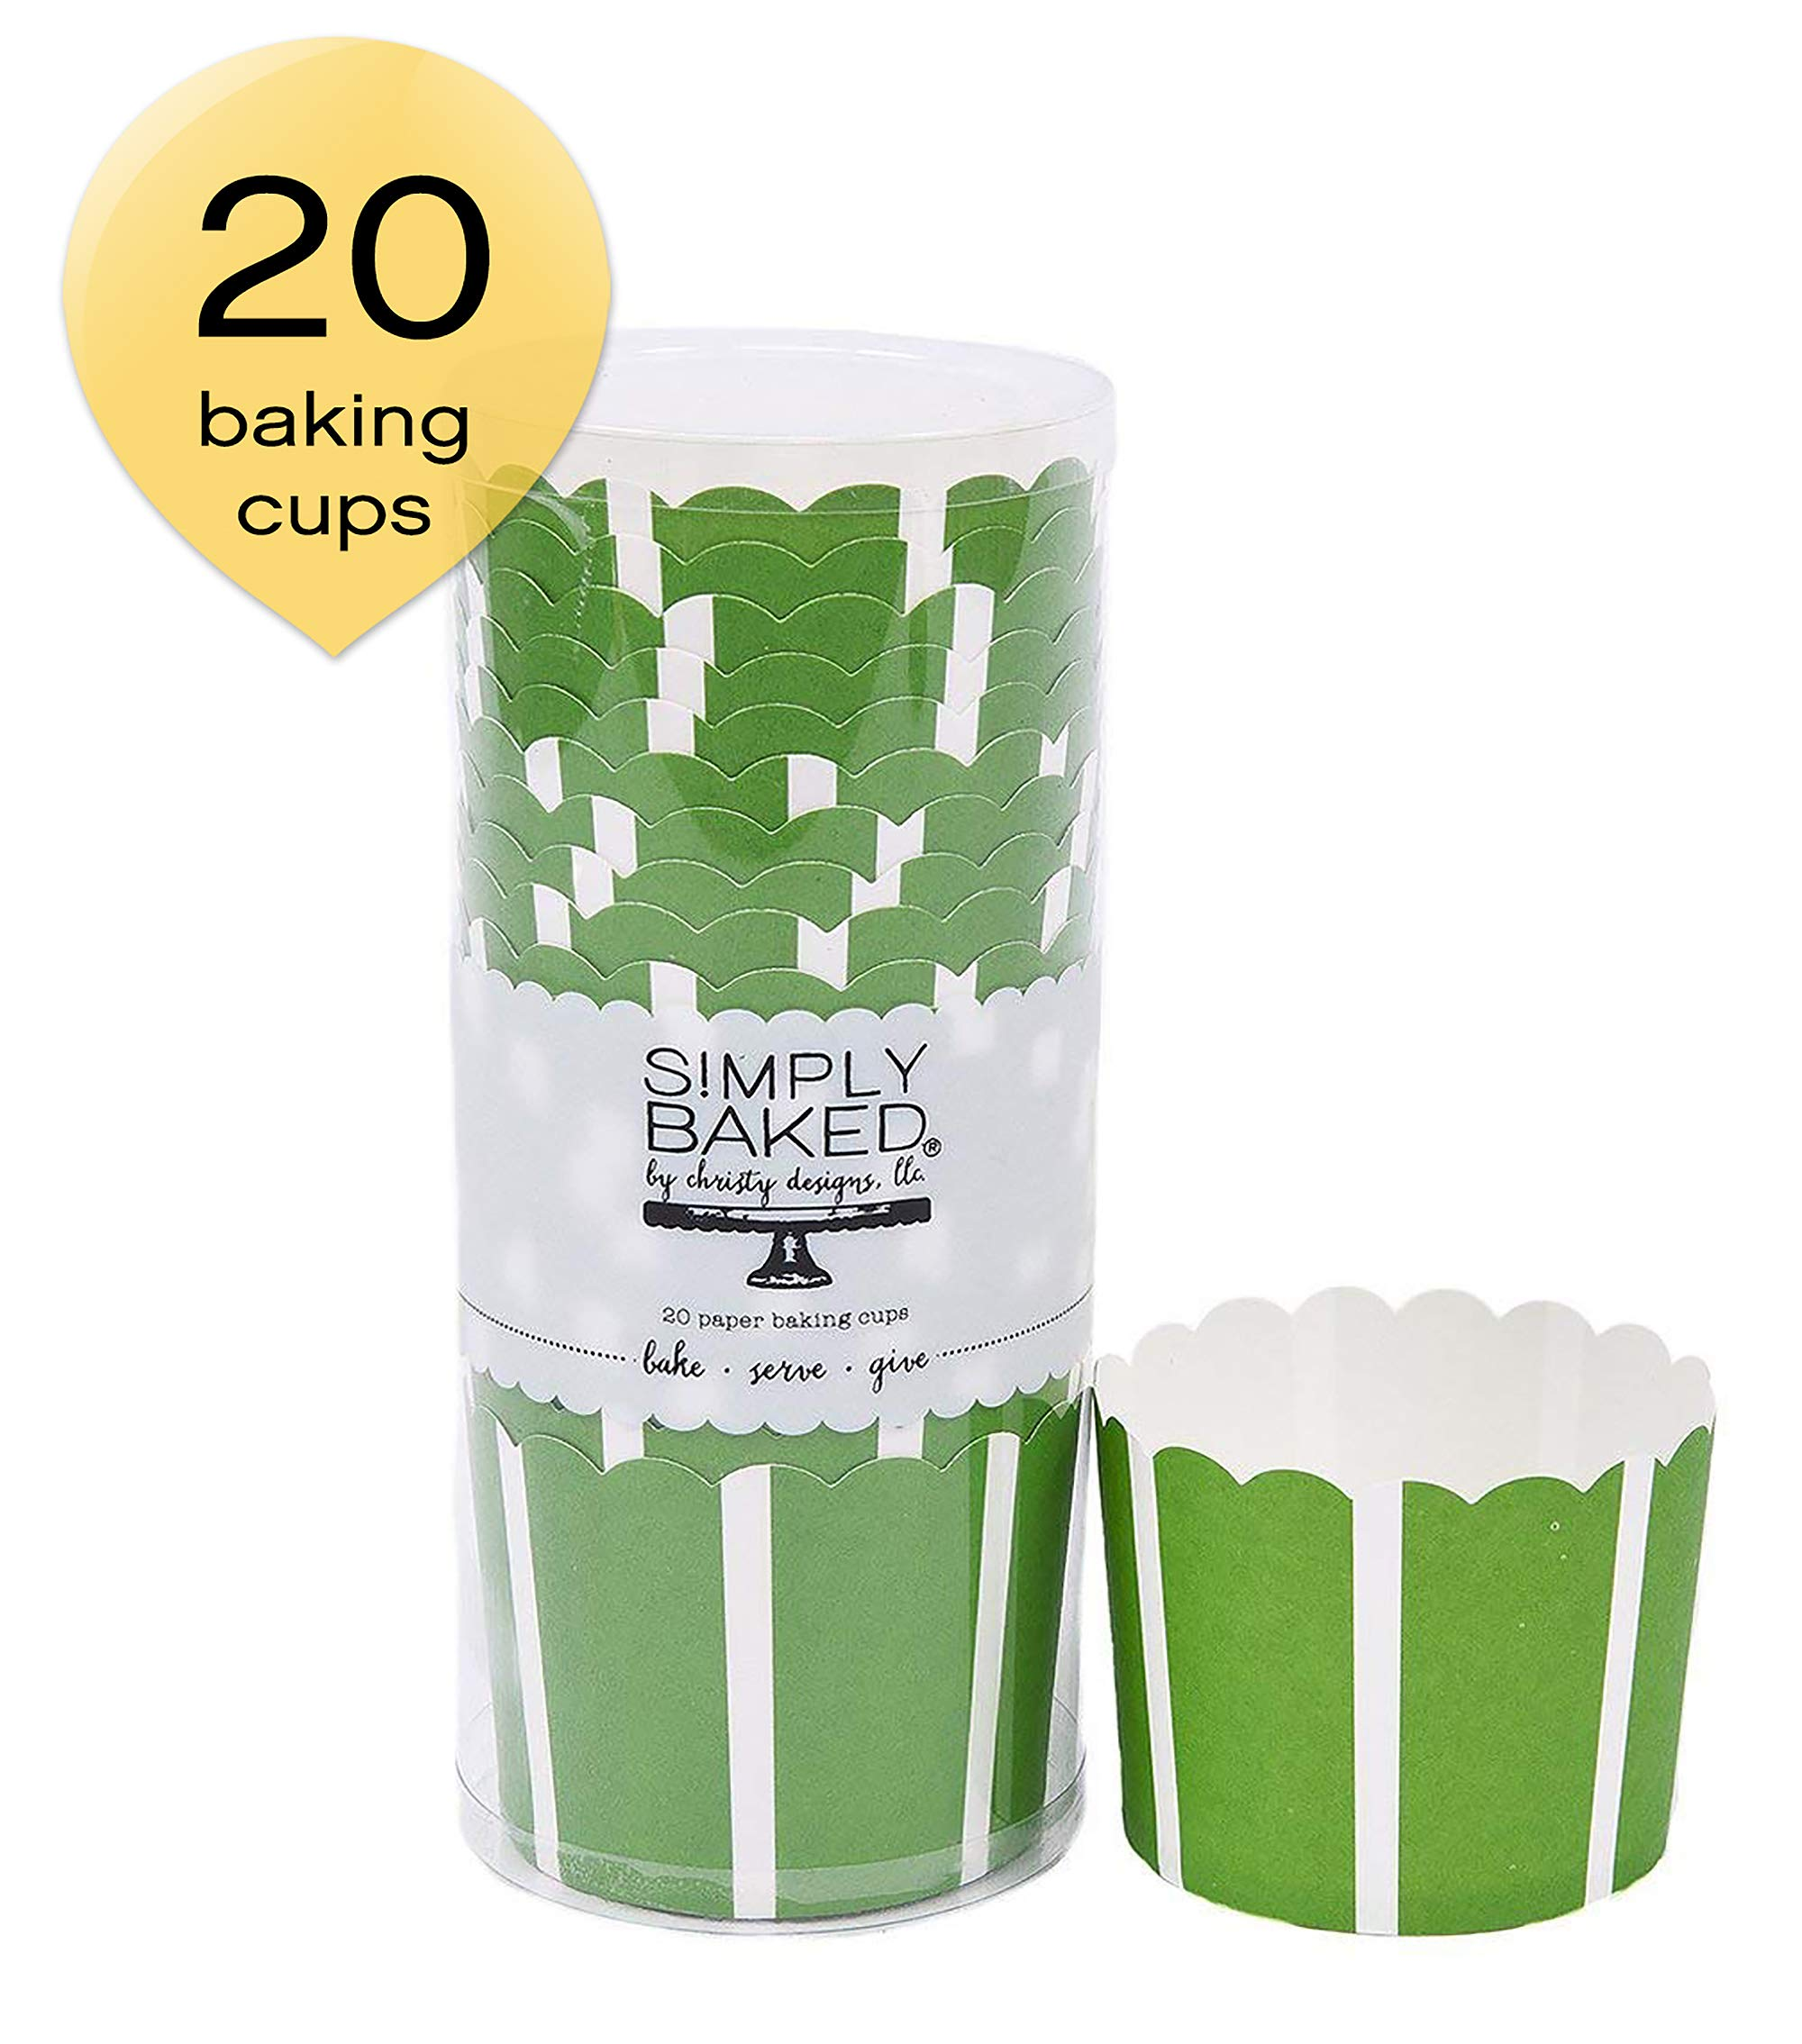 Simply Baked Large Baking Cups, 20-Pack, Green with White Stripe